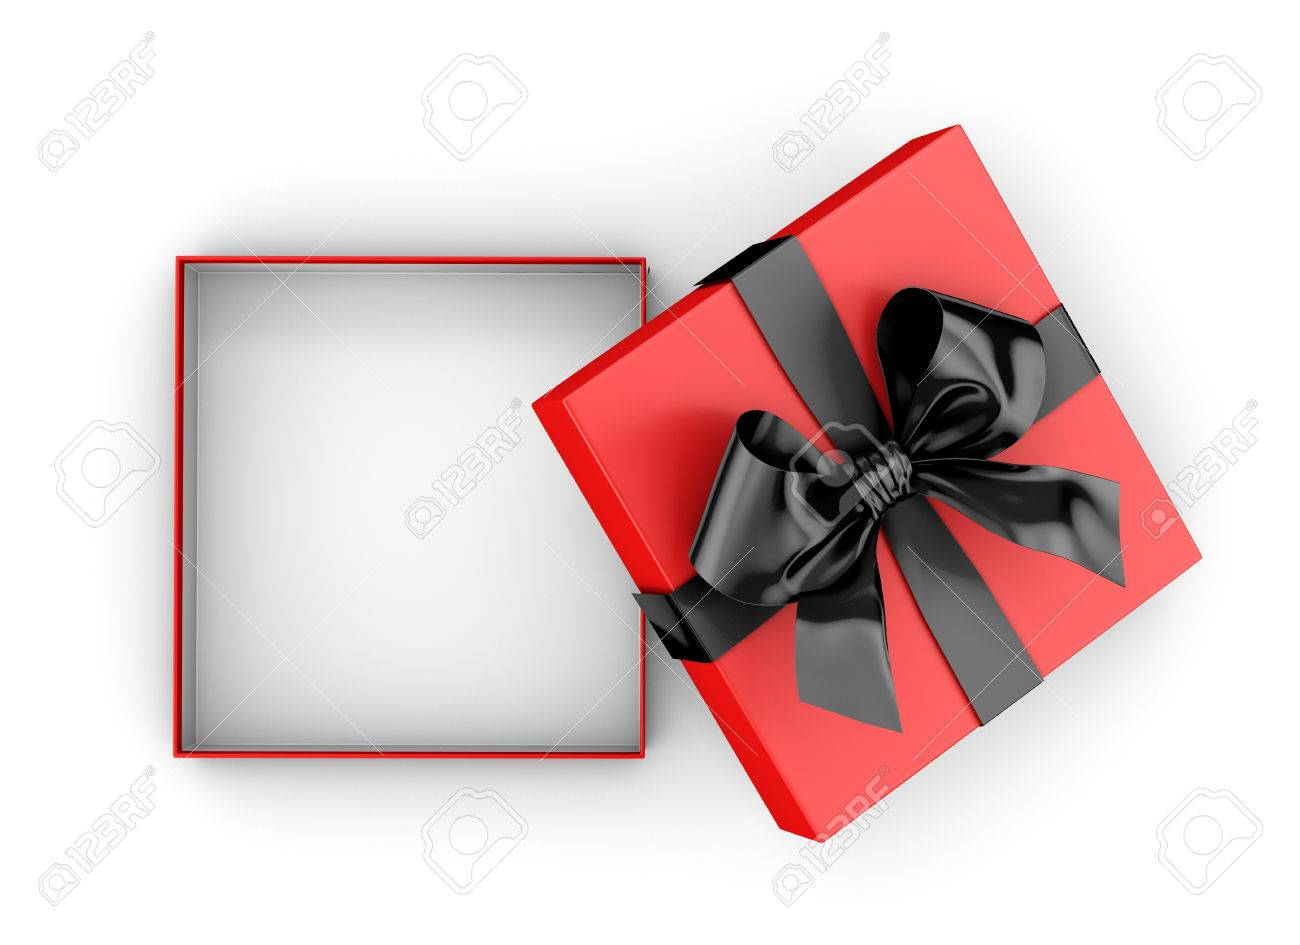 Open gift box for christmas new years day black red gift open gift box for christmas new years day black red gift box top view negle Gallery